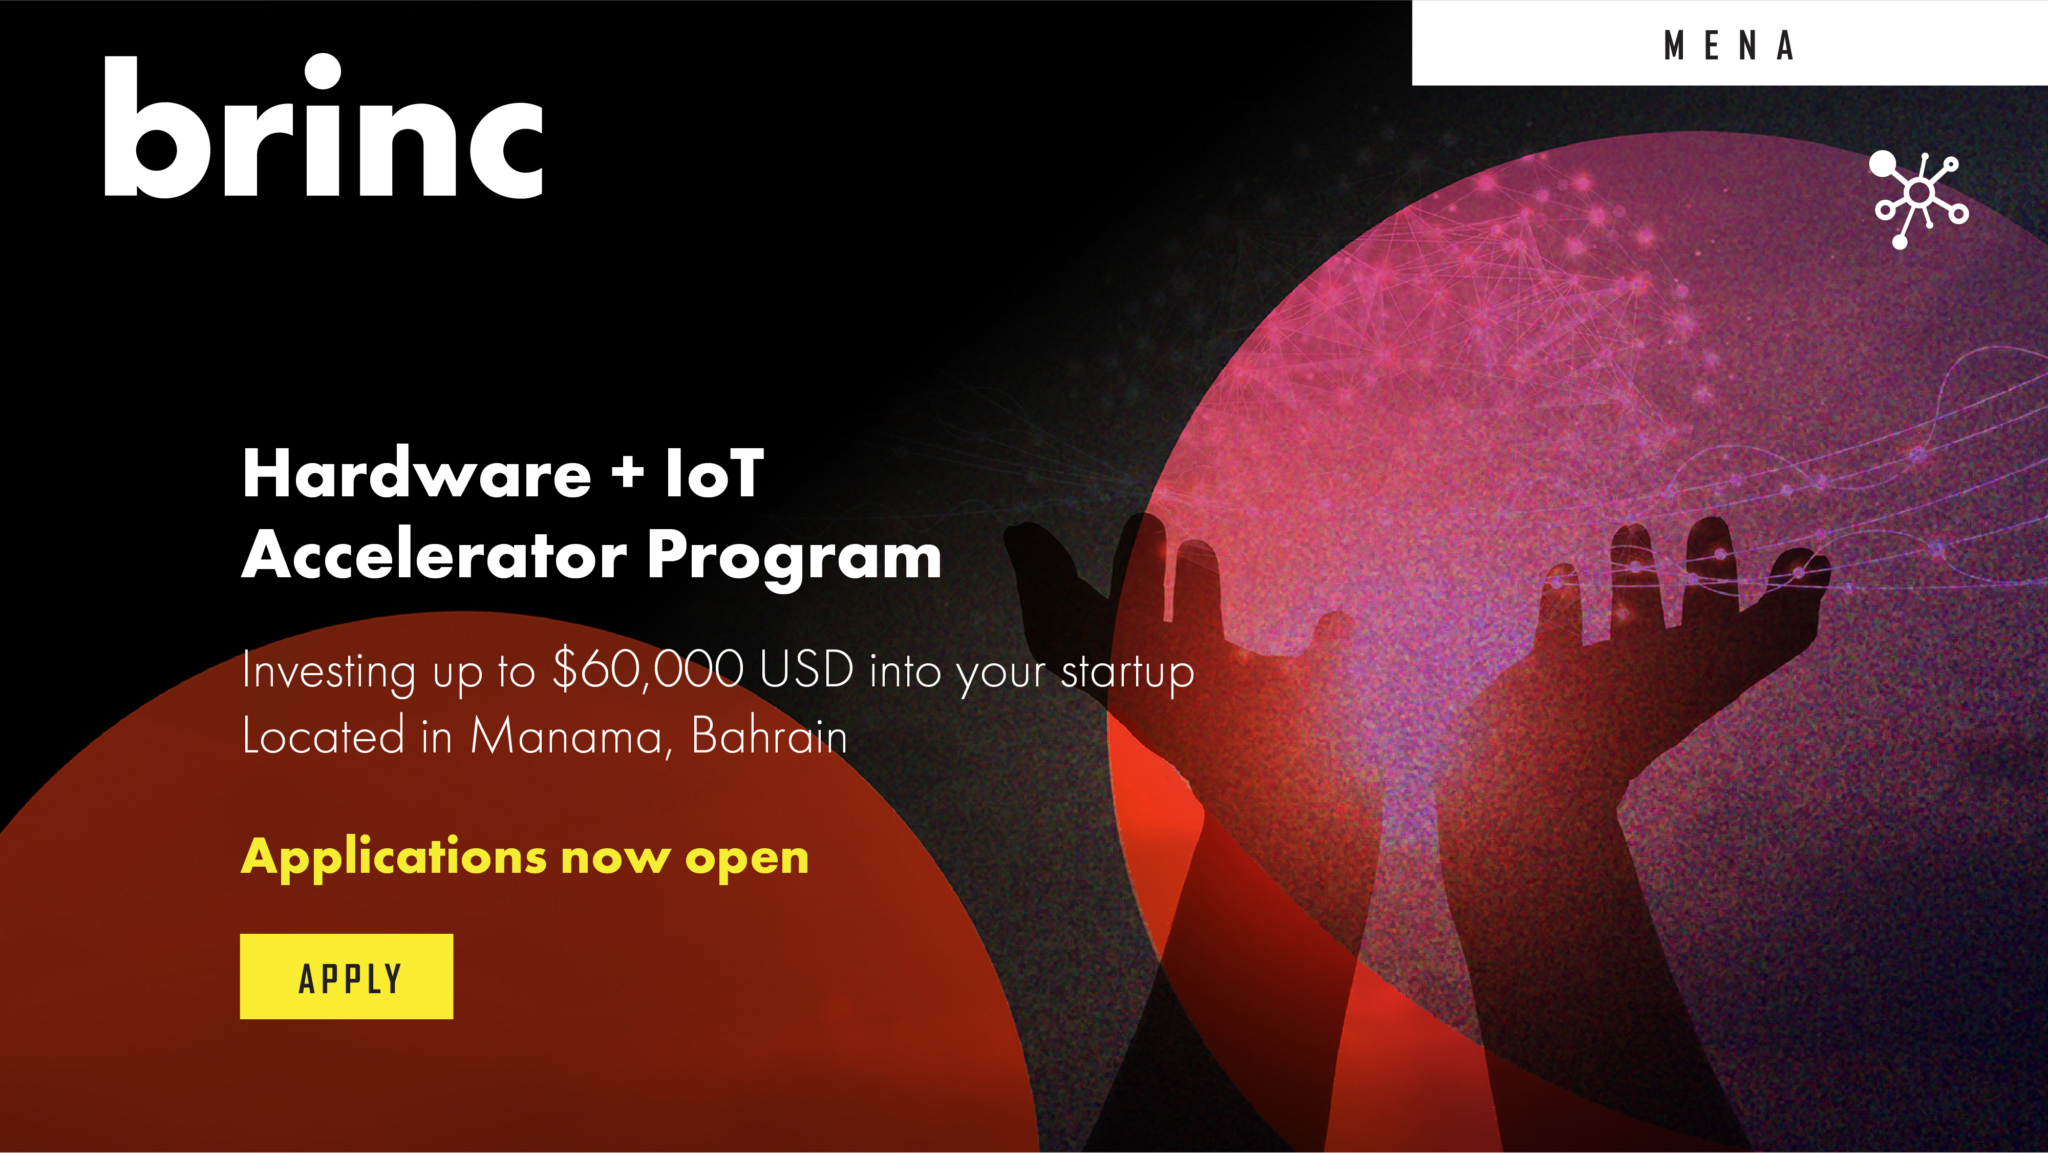 Brinc Batelco is now accepting applications for next cohort